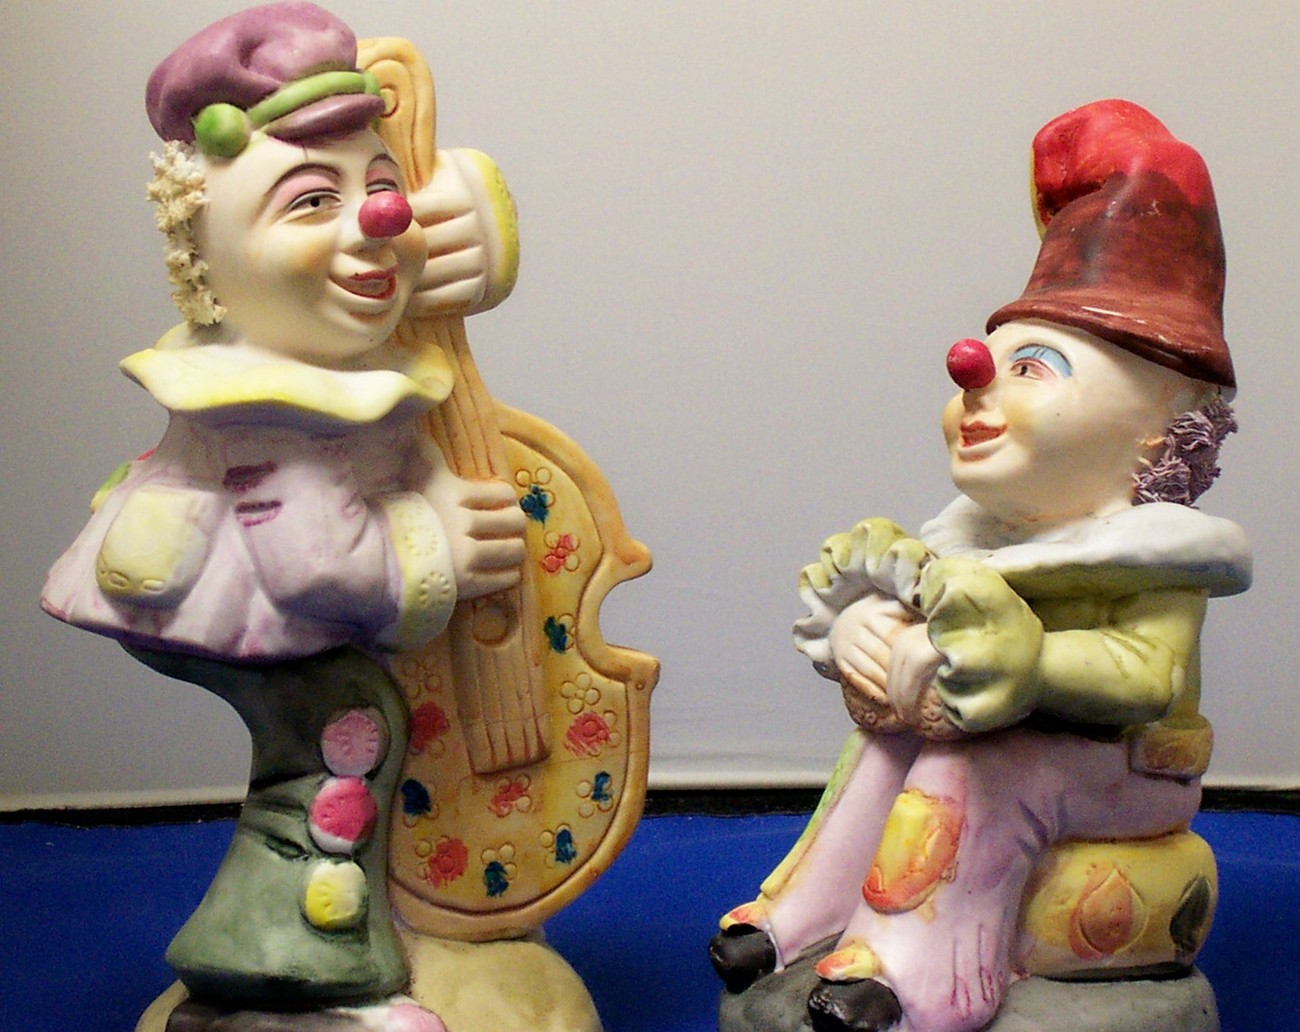 Primary image for PAIR OF CLOWN FIGURINES by ALBERT E. PRICE, INC. 1986